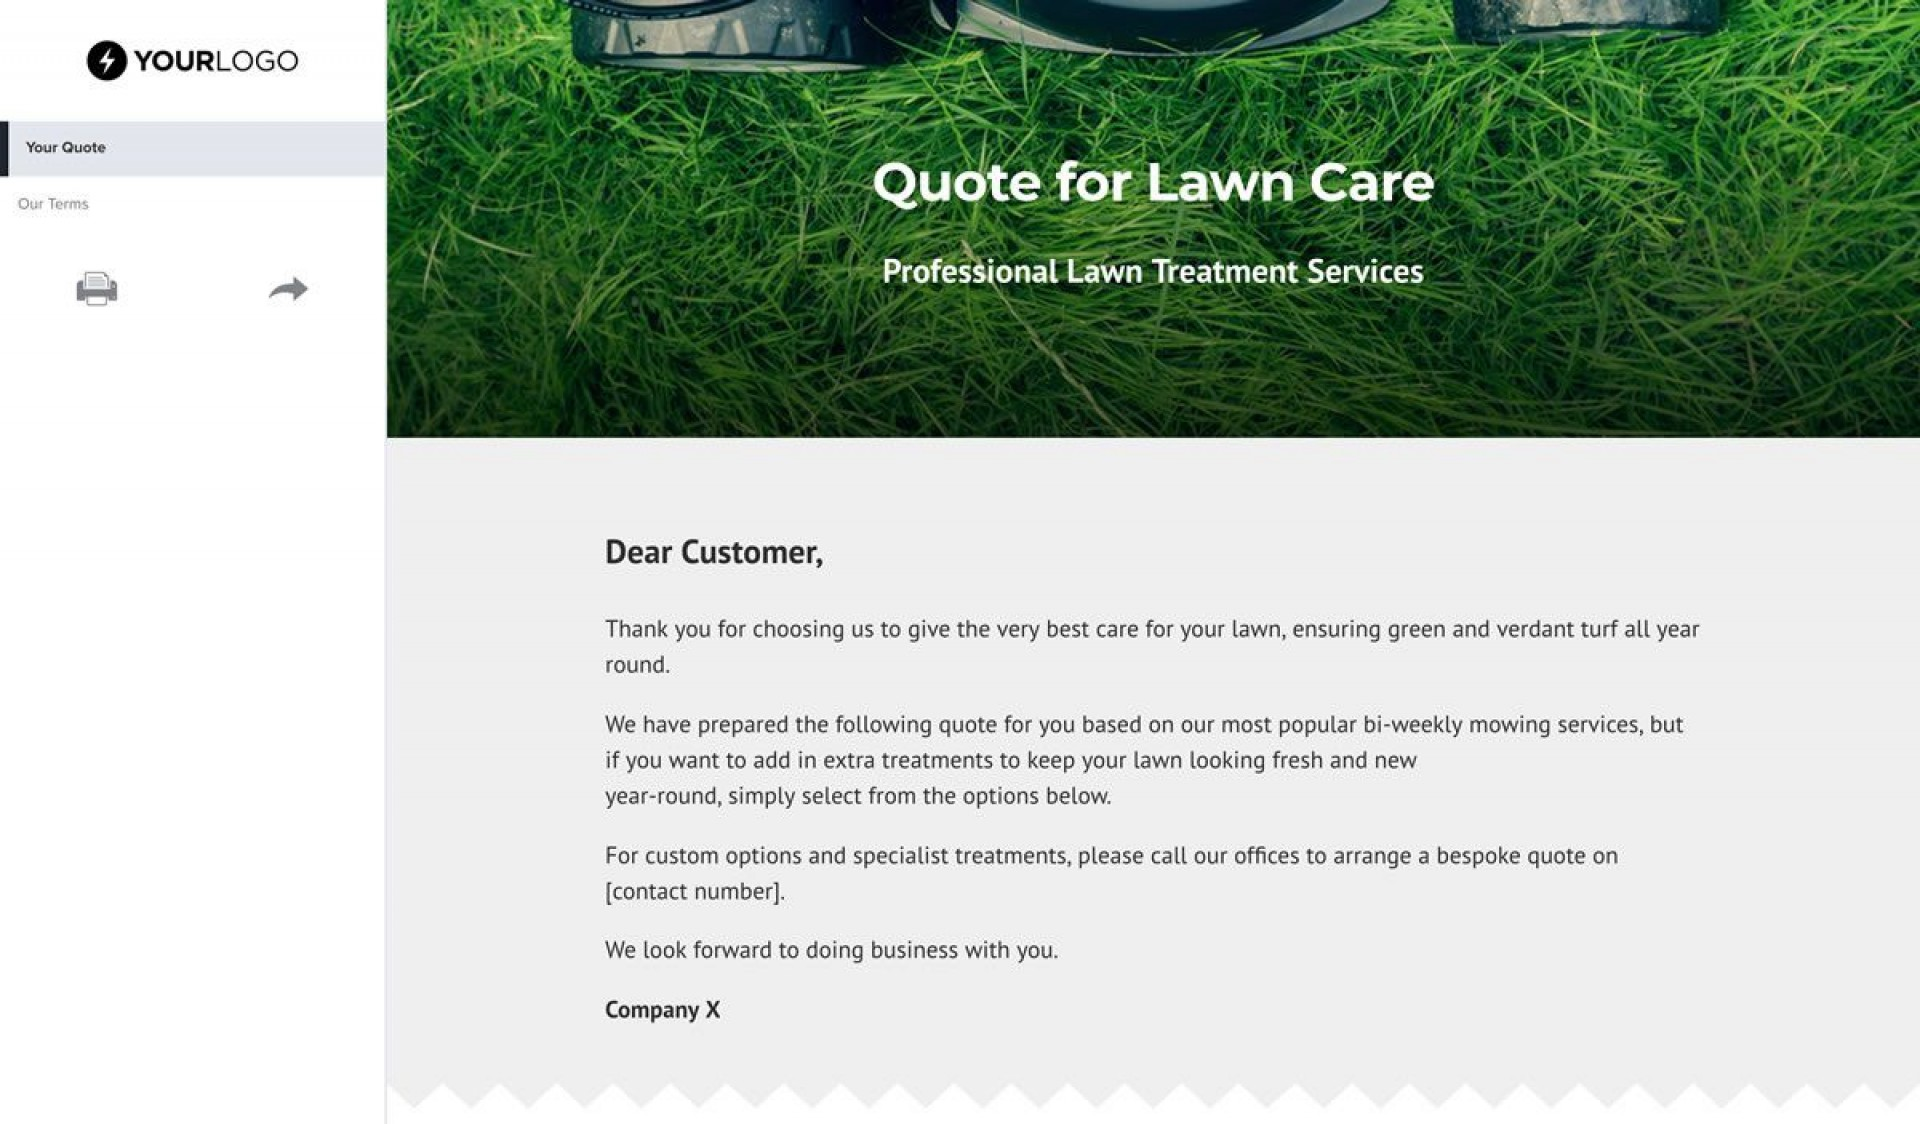 000 Best Commercial Lawn Care Bid Template High Resolution 1920